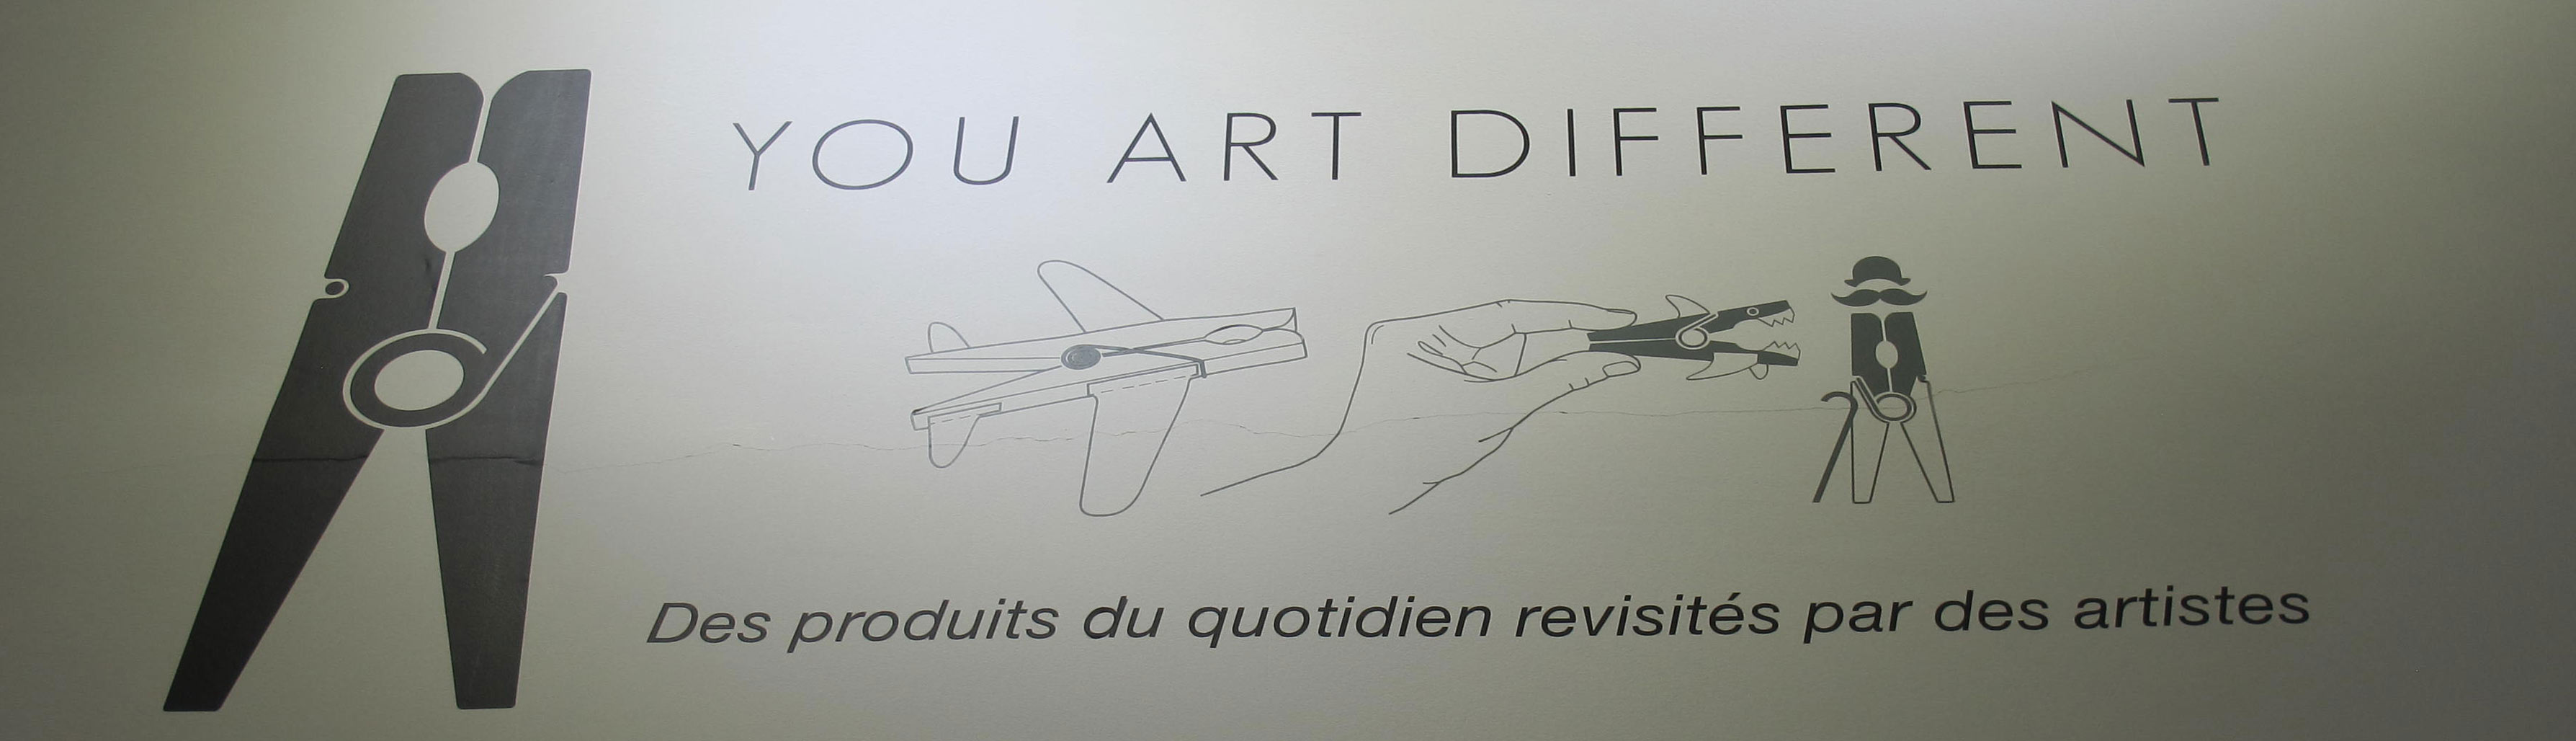 you_art_different